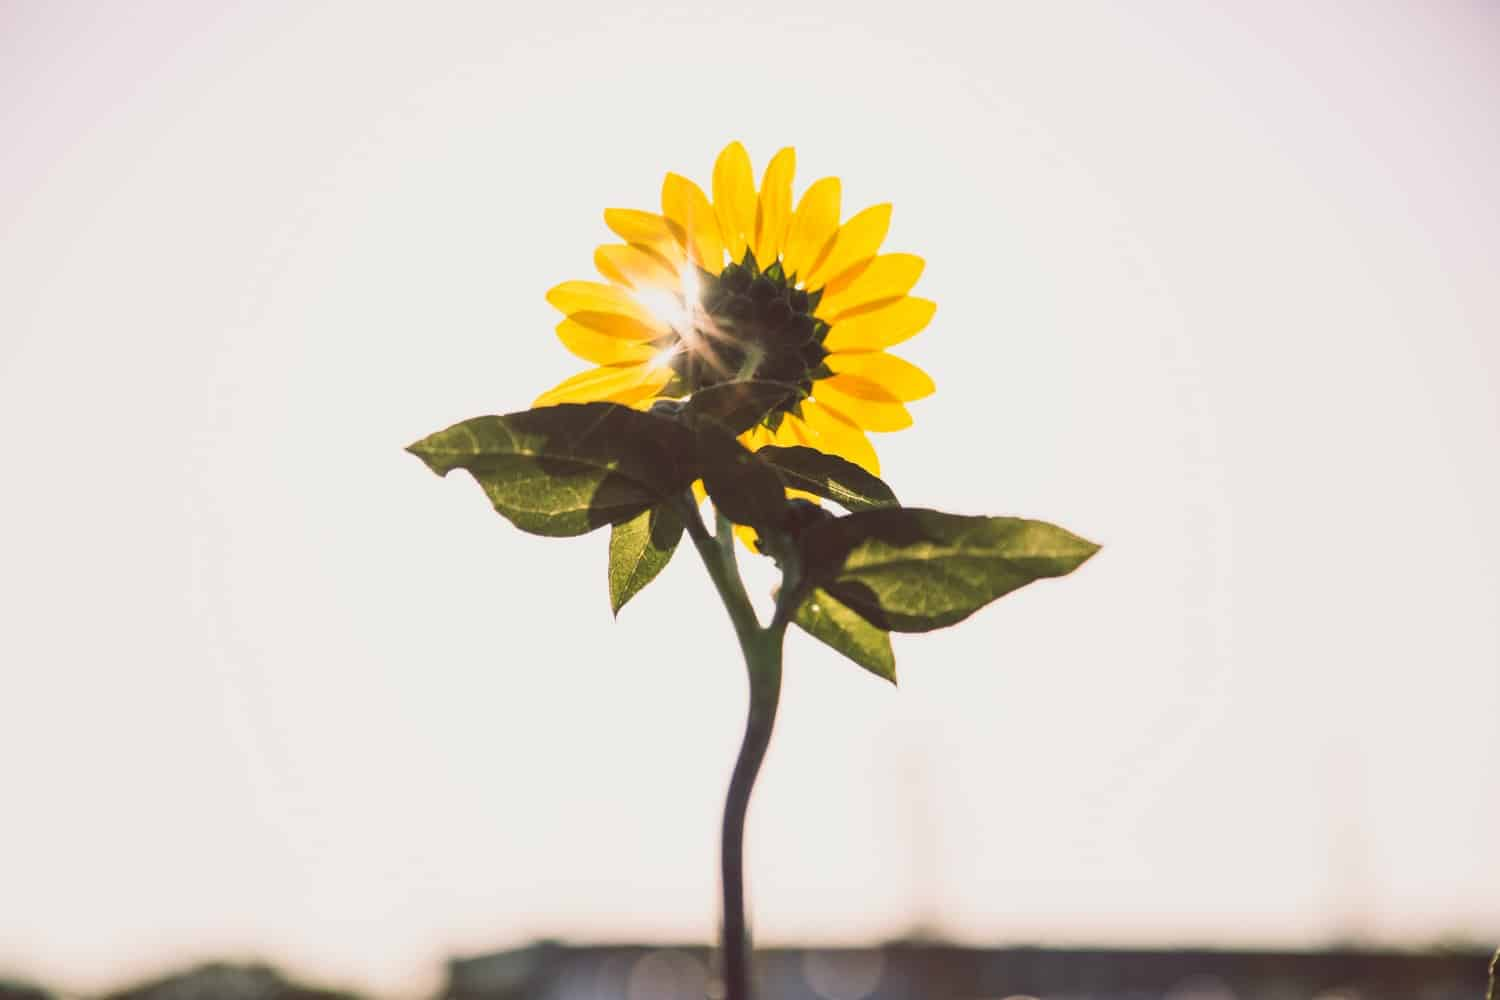 10 Short Positive Quotes Which Will Brighten Up Your Day